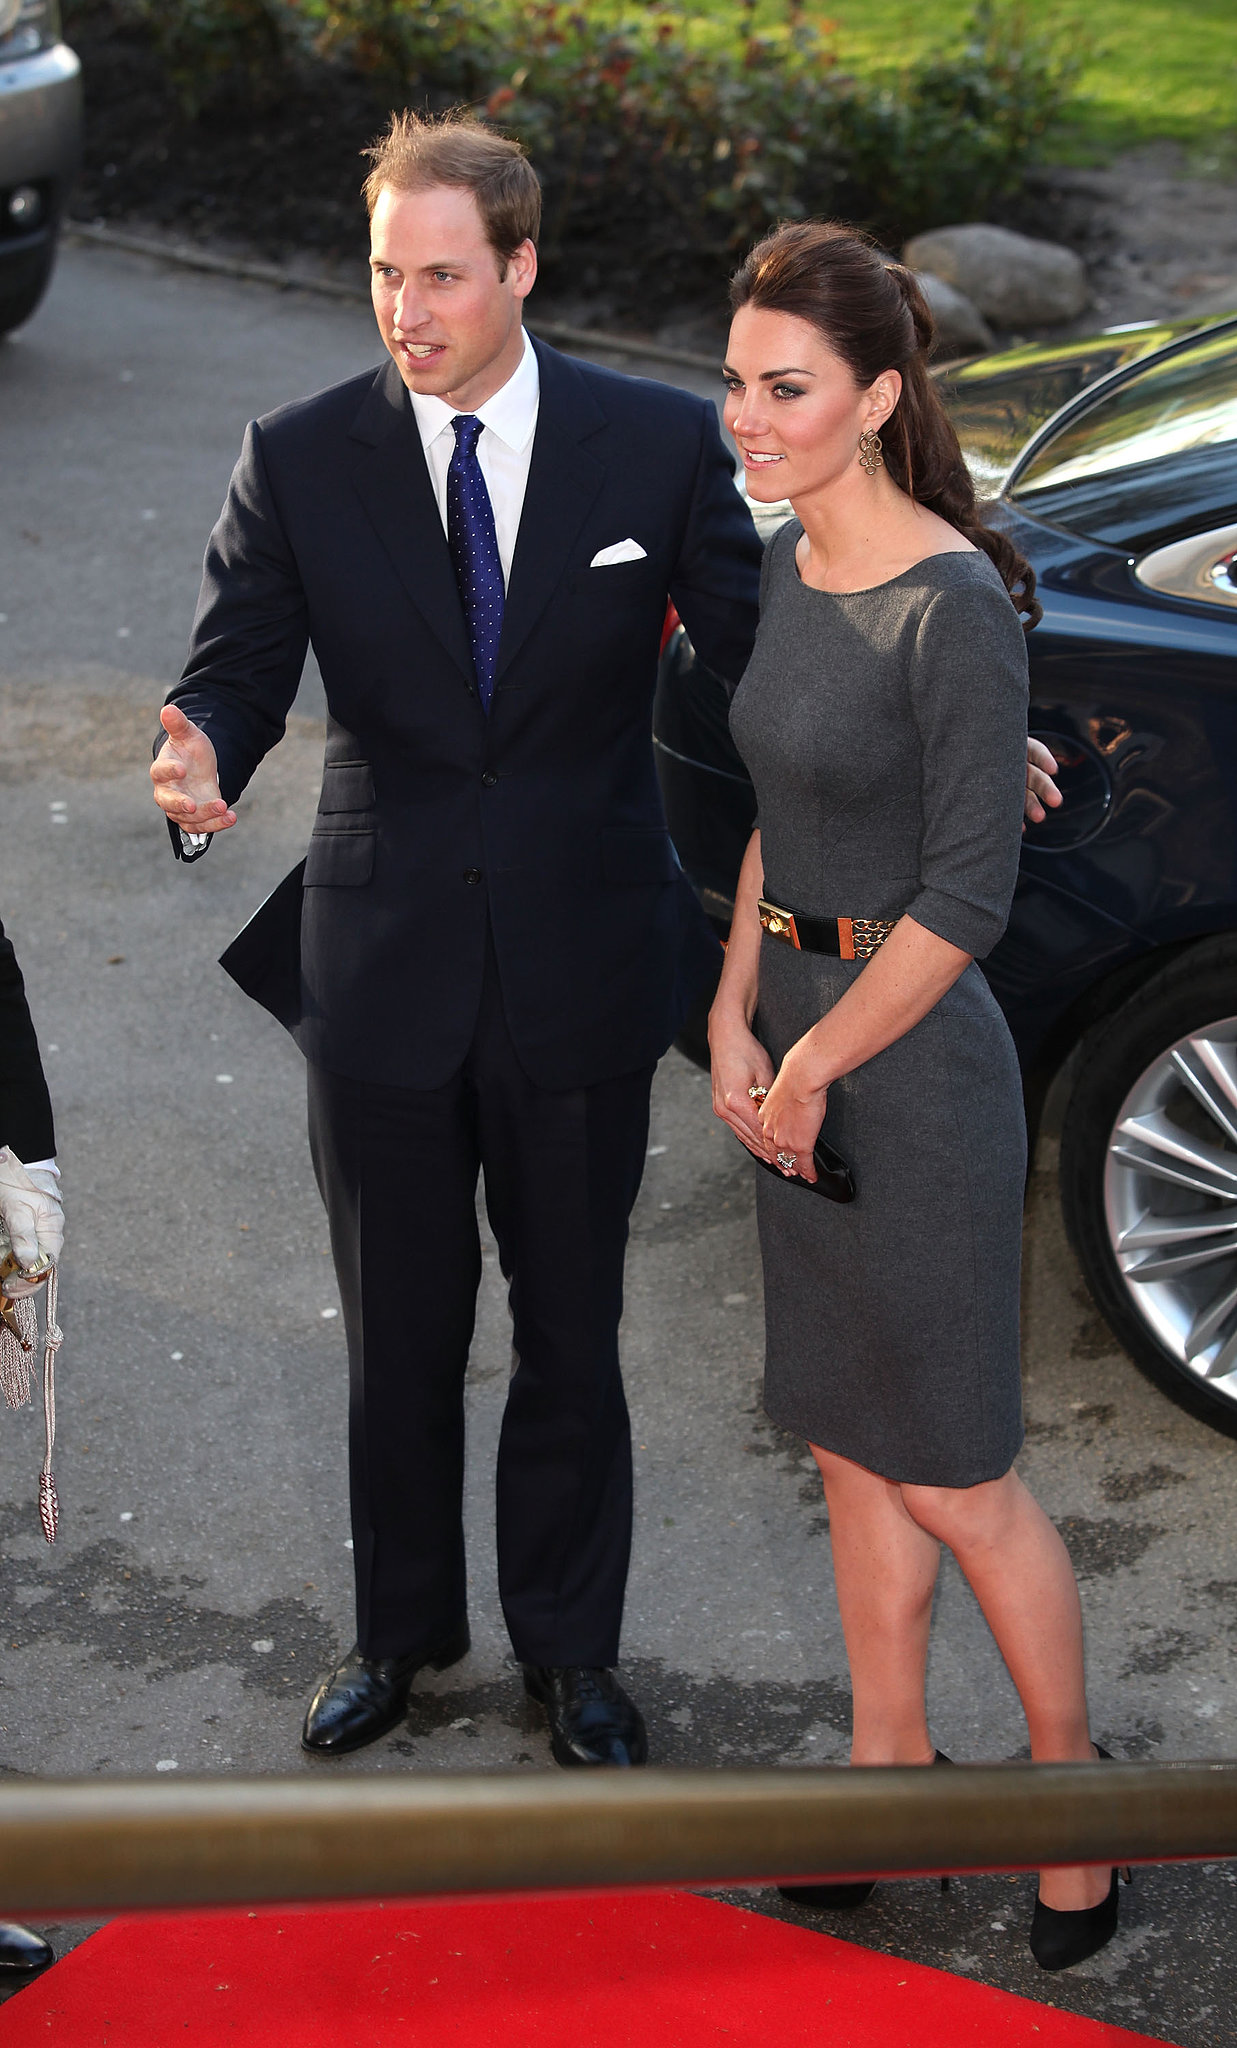 Prince William and Kate kept close on their way into a 2012 royal appearance at the Imperial War Museum in London.